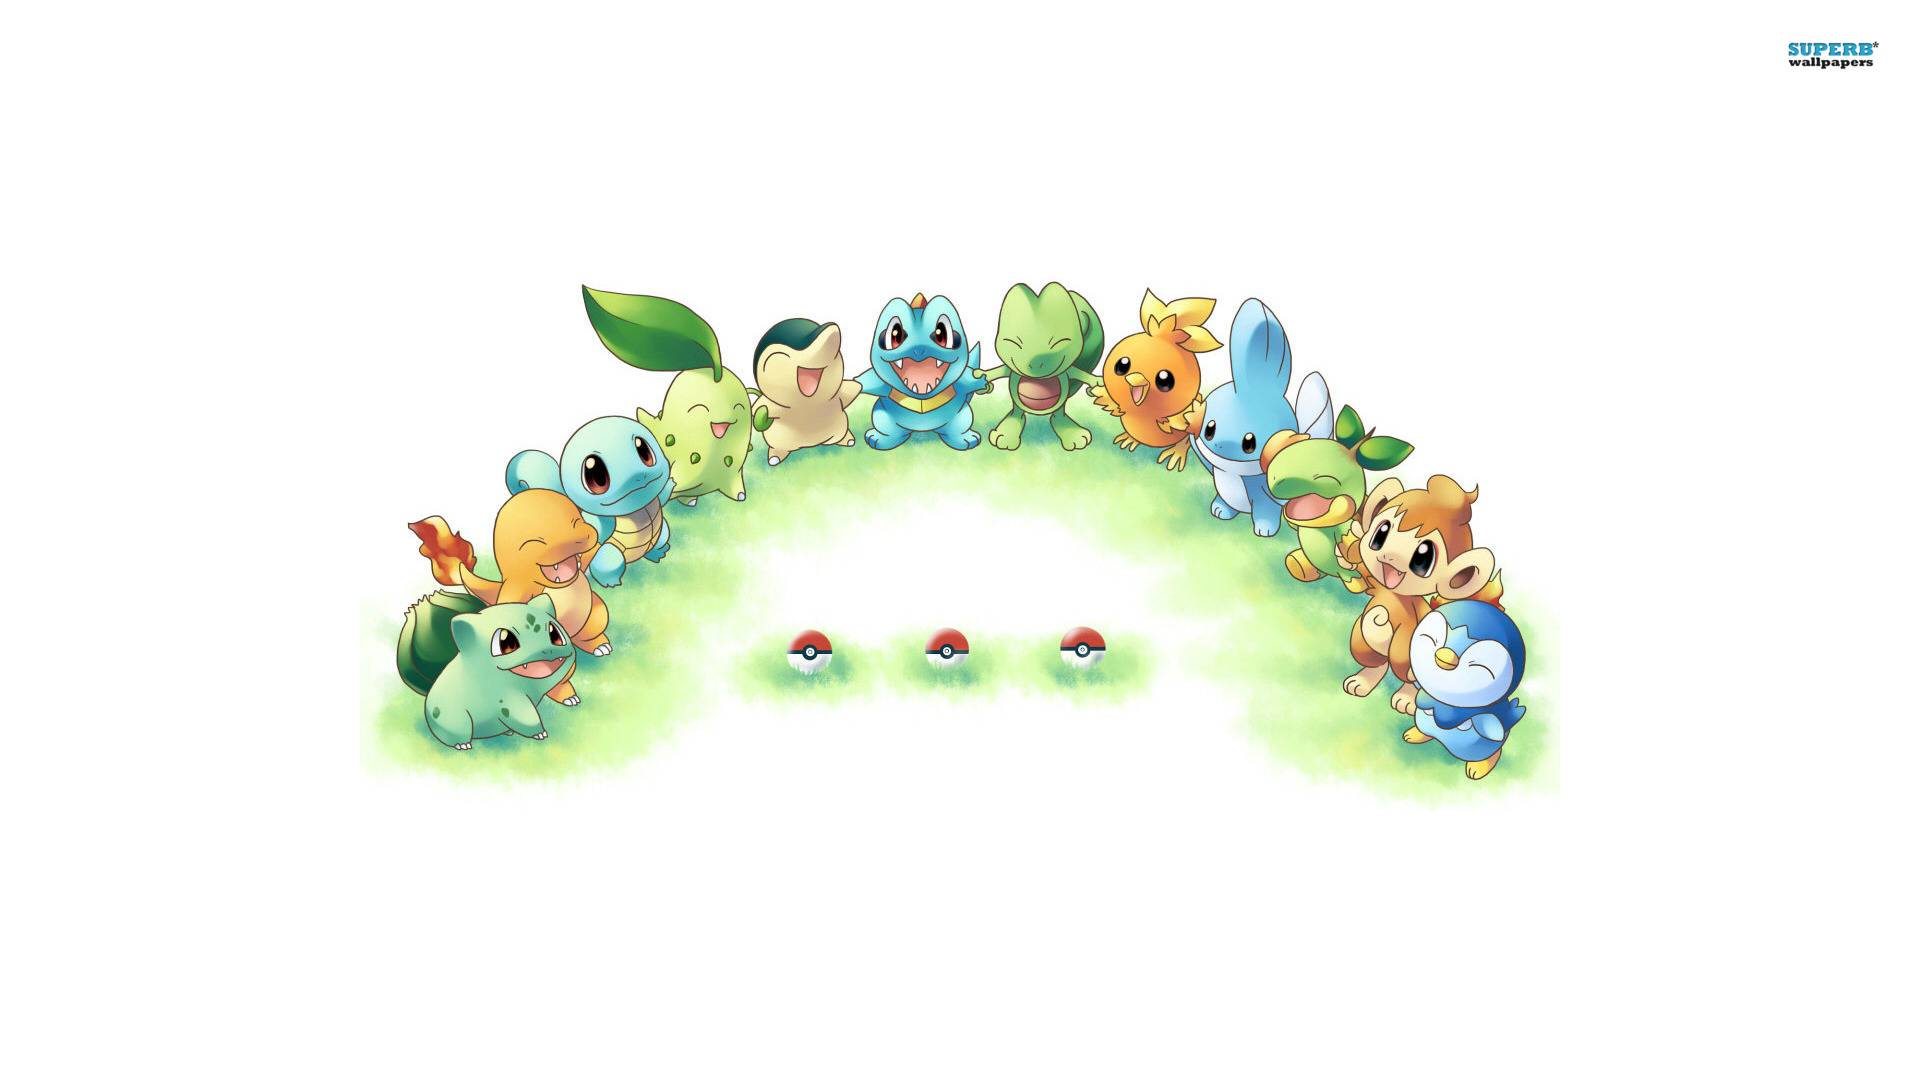 Pokemon Wallpapers Cute - Wallpaper Cave